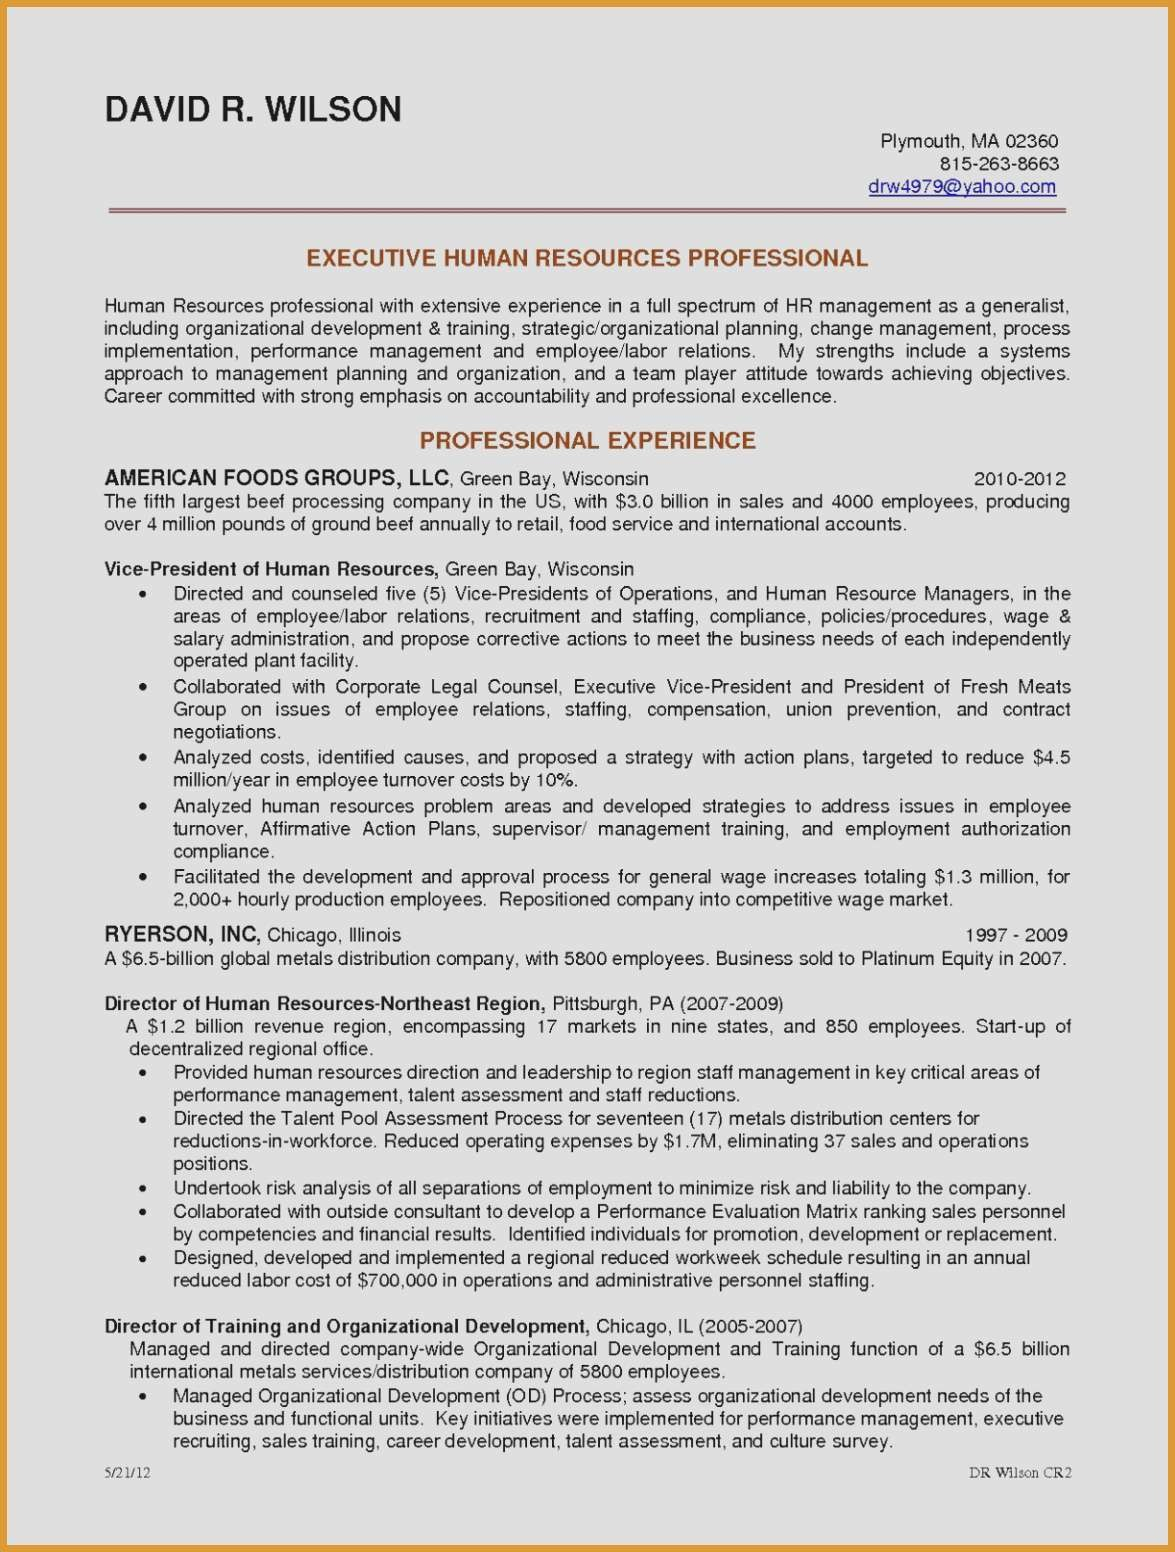 Executive Resume Writing Services - Executive Resume Writer Beautiful Executive Resume Writing Service